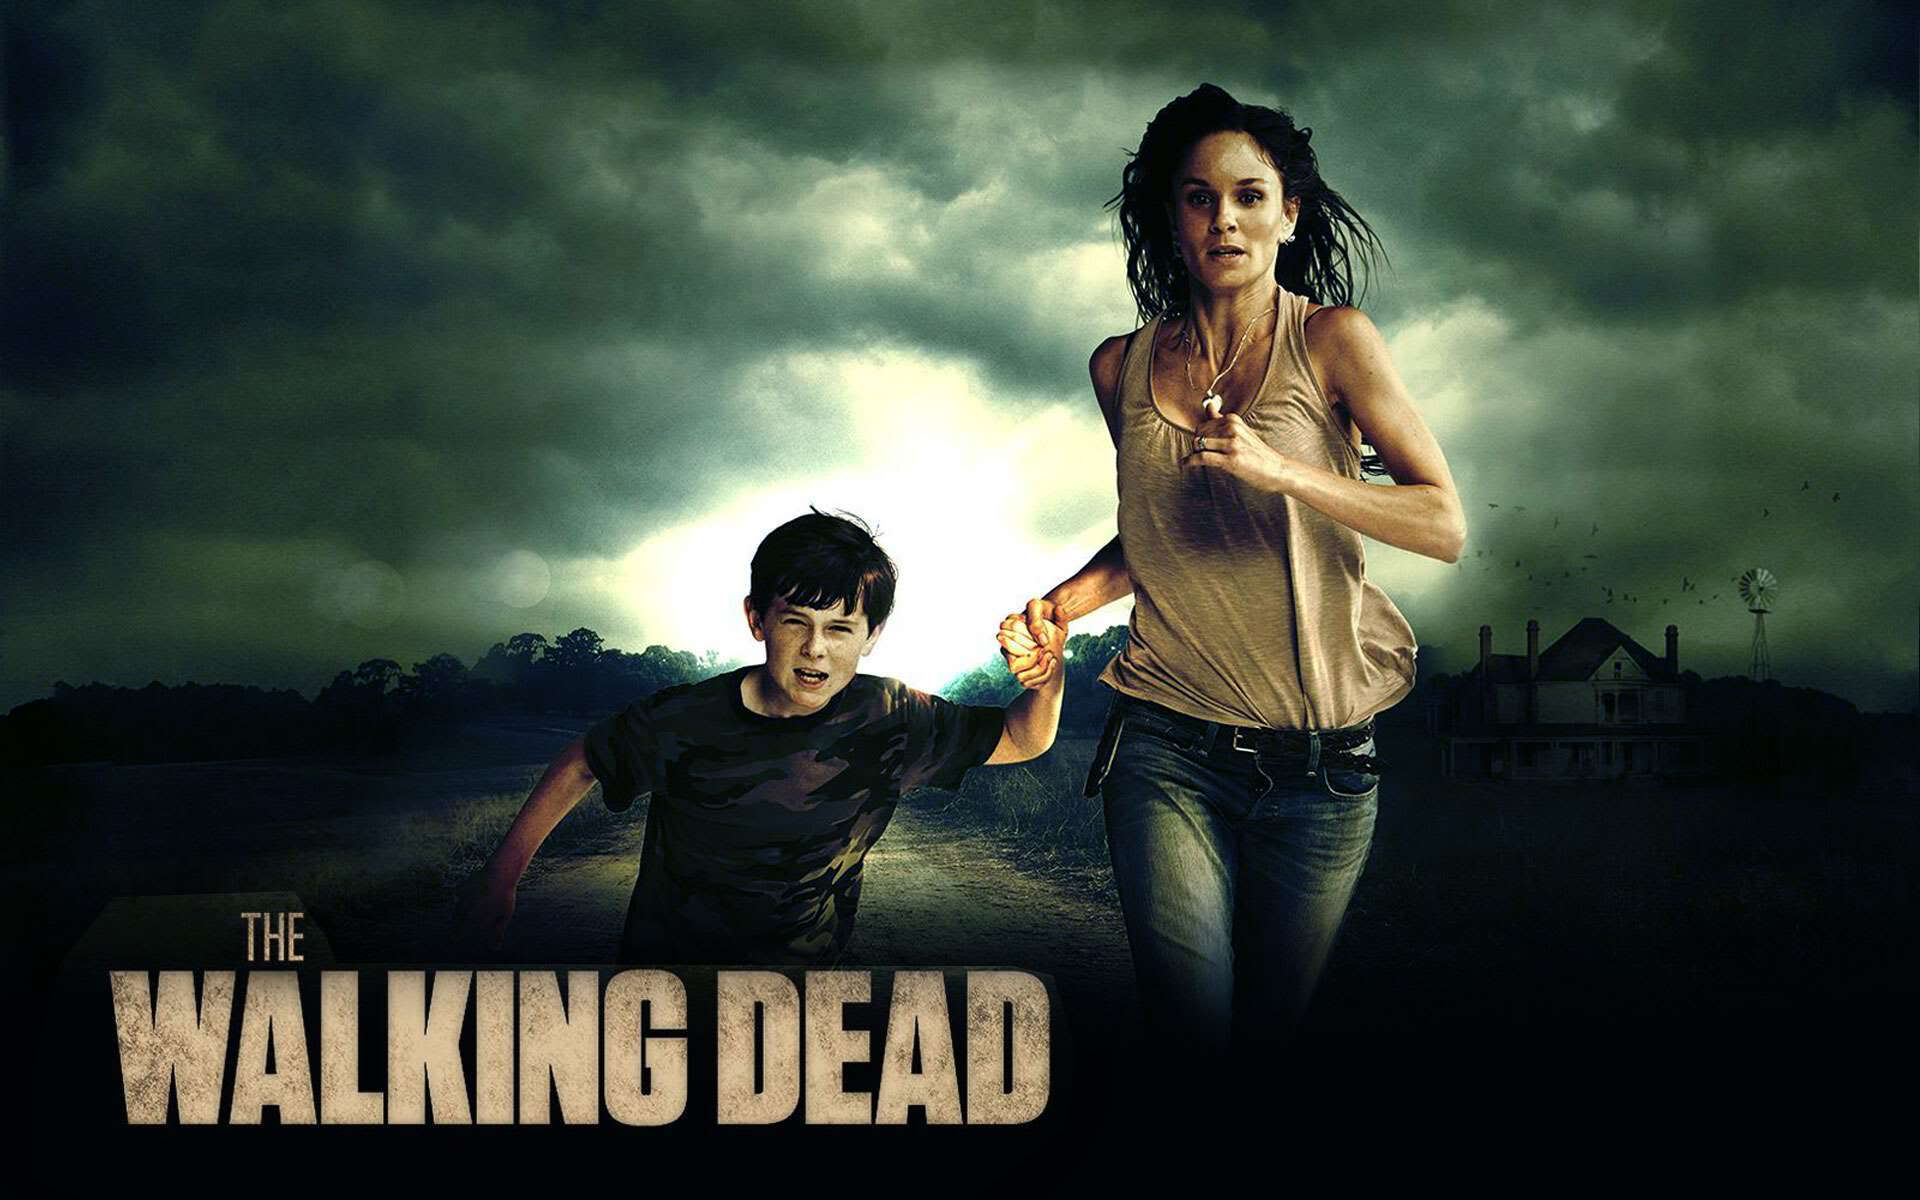 The Walking Dead HD Wallpaper New Tab Theme